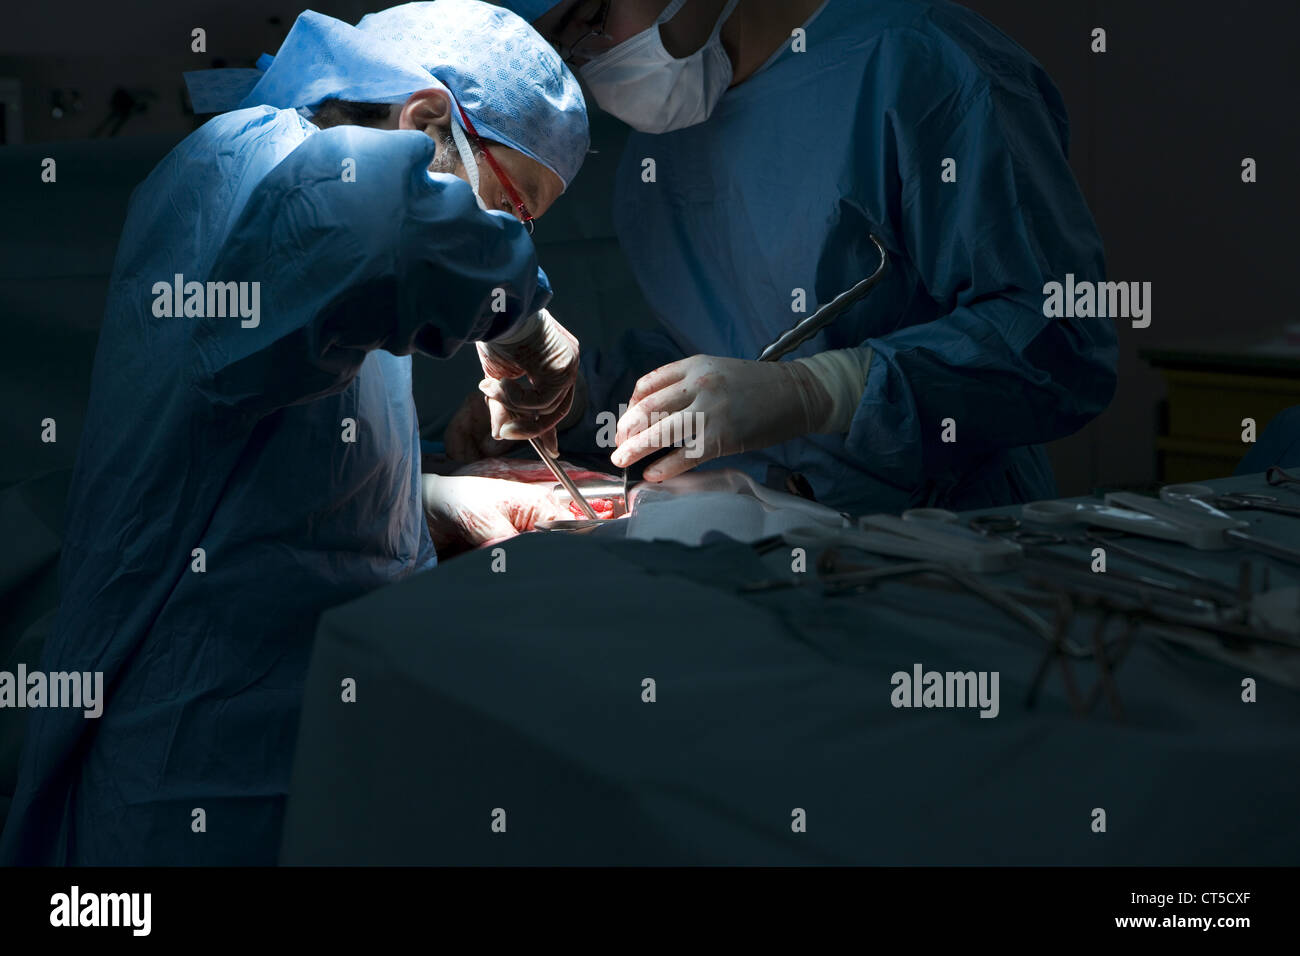 KIDNEY SURGERY - Stock Image